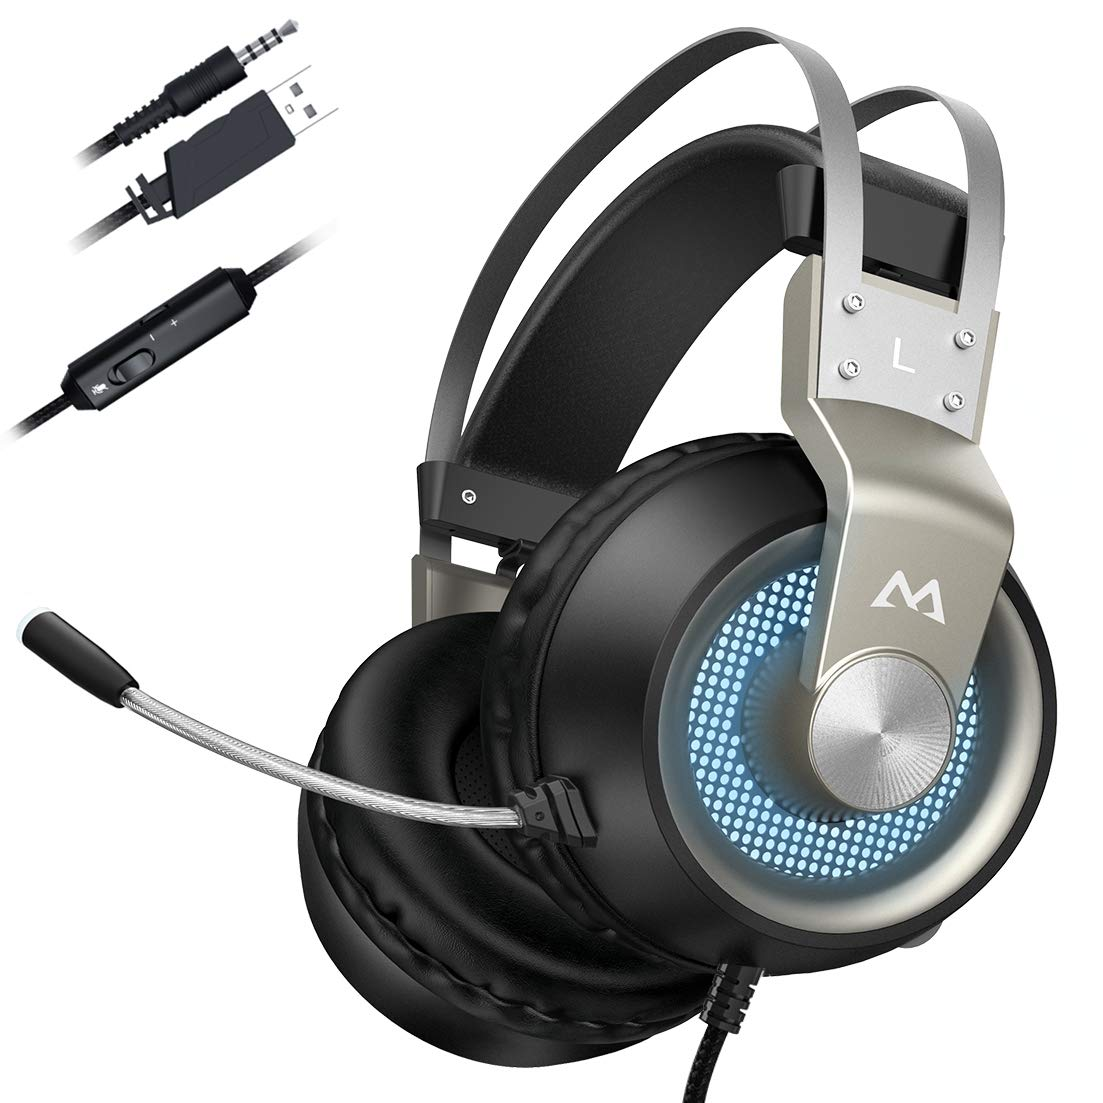 Mpow EG3 PRO Gaming Headset (All-Platform Edition), with Mic, 50mm Drivers,  Bass Boost Surround Sound, In-line Control, Zero Fatigue Earpads, PC, PS4